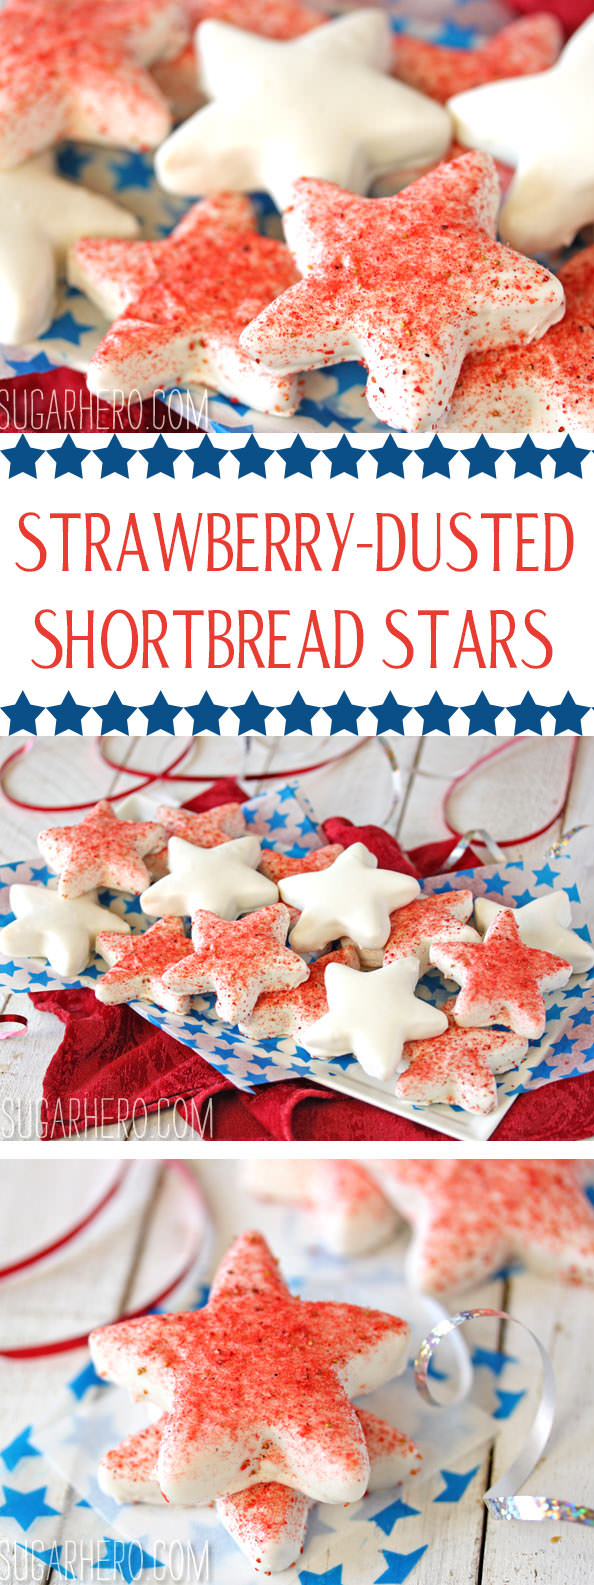 Strawberry-Dusted Shortbread Stars | From SugarHero.com